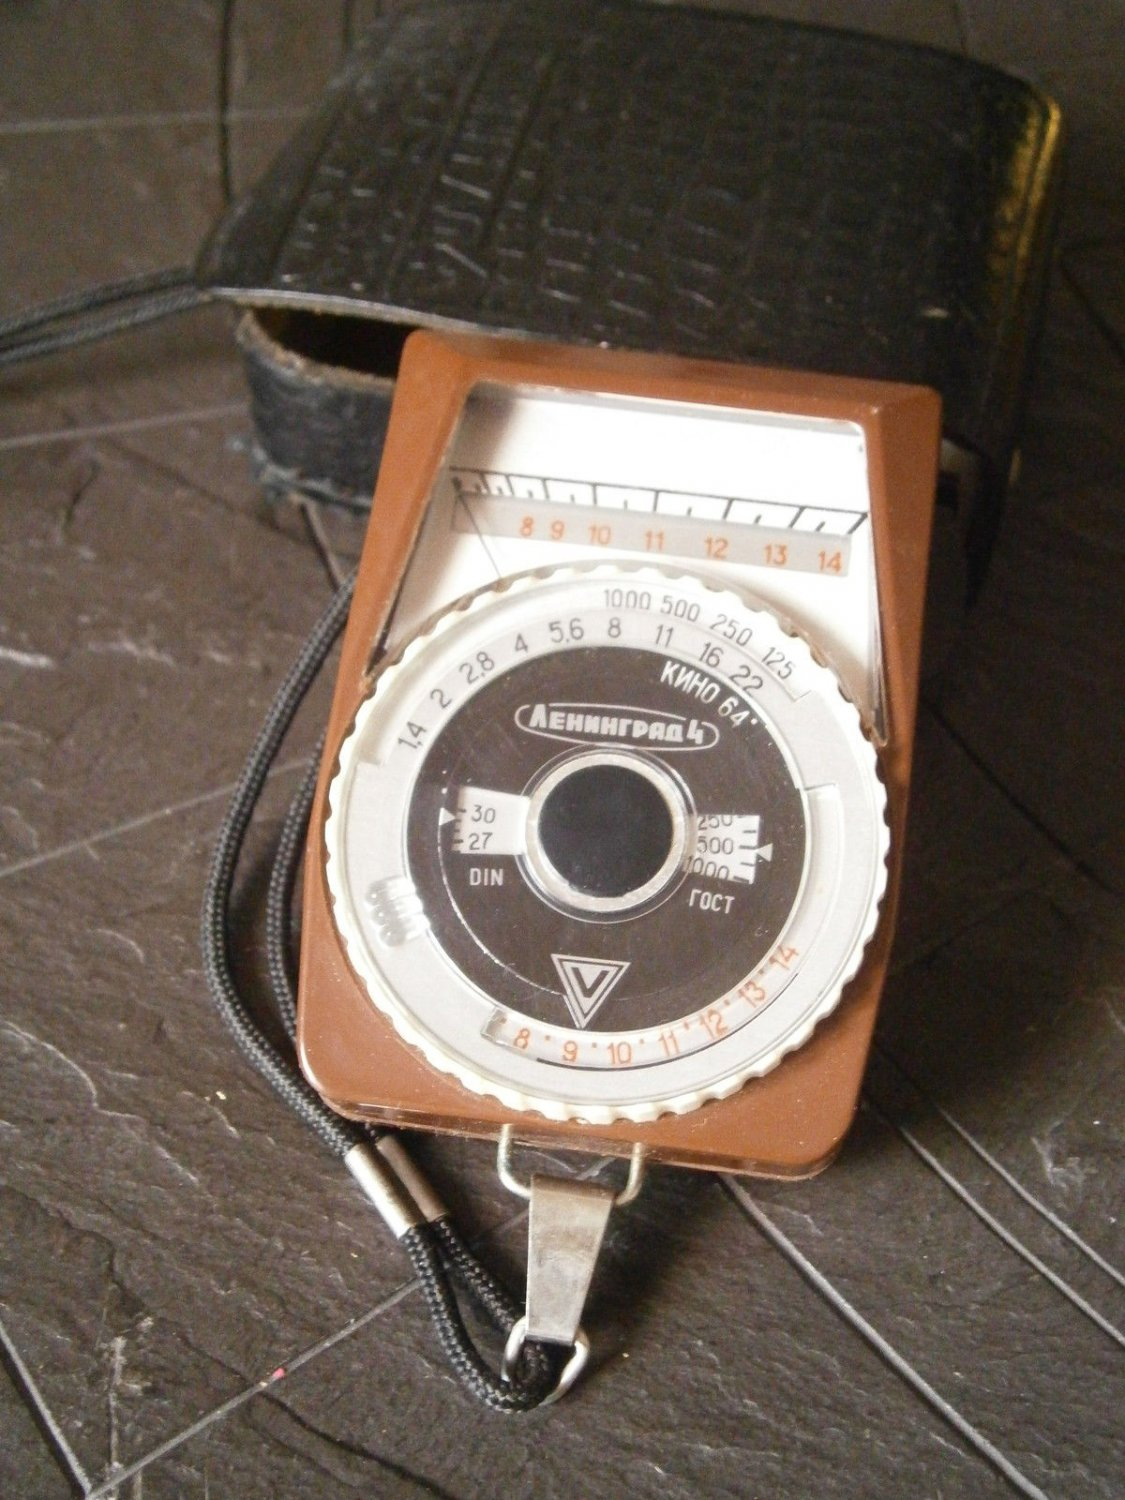 Original EXPOSURE CALCULATOR Light Meter from ex URSS Russia working 1950s